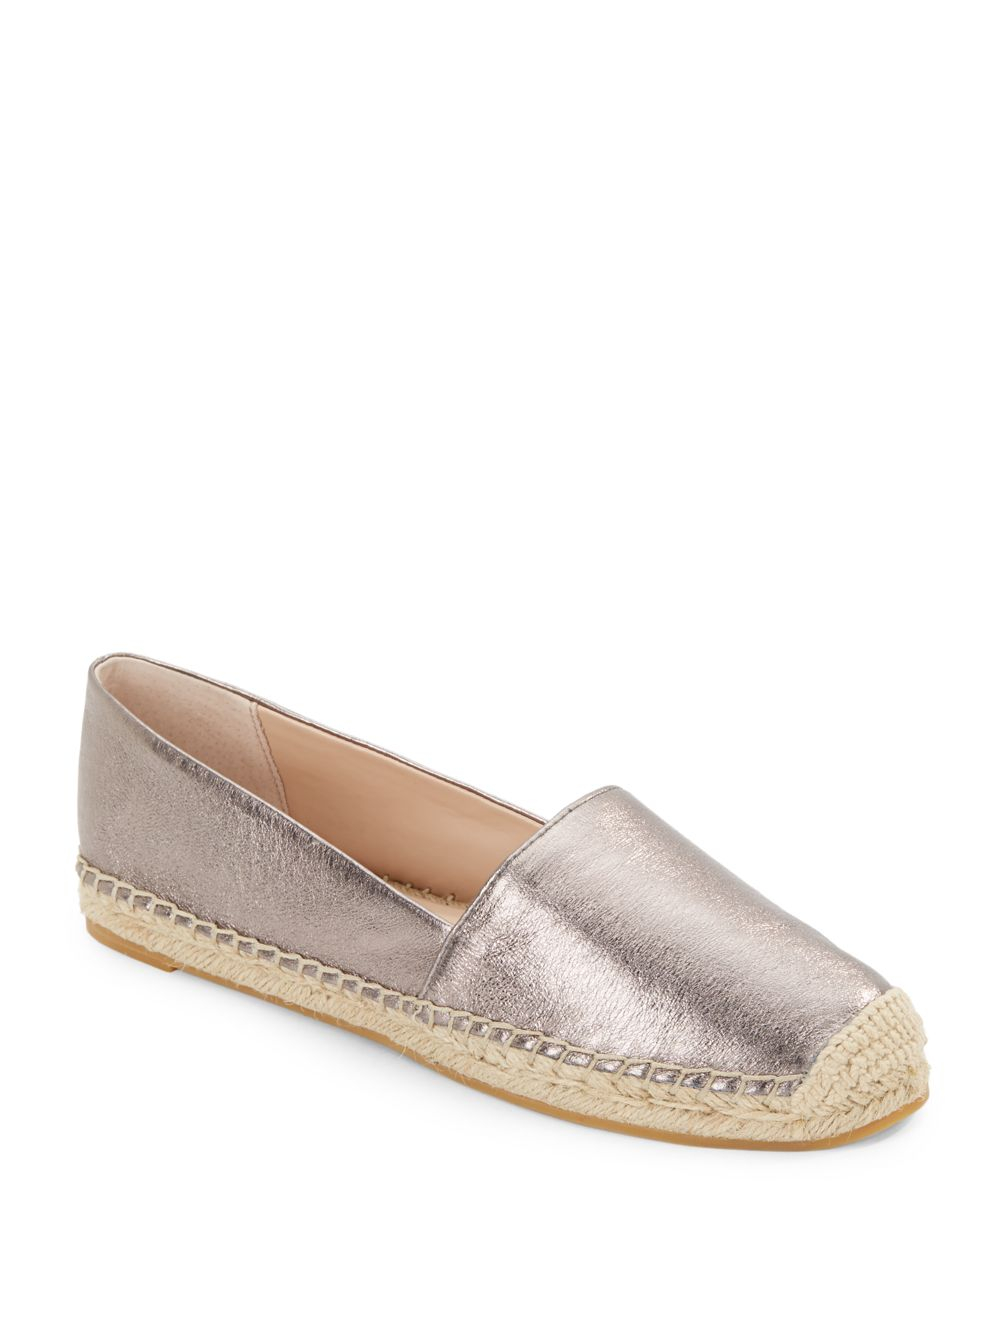 a6bd125139a French Connection Sammy Metallic Leather Espadrille Flats in ...